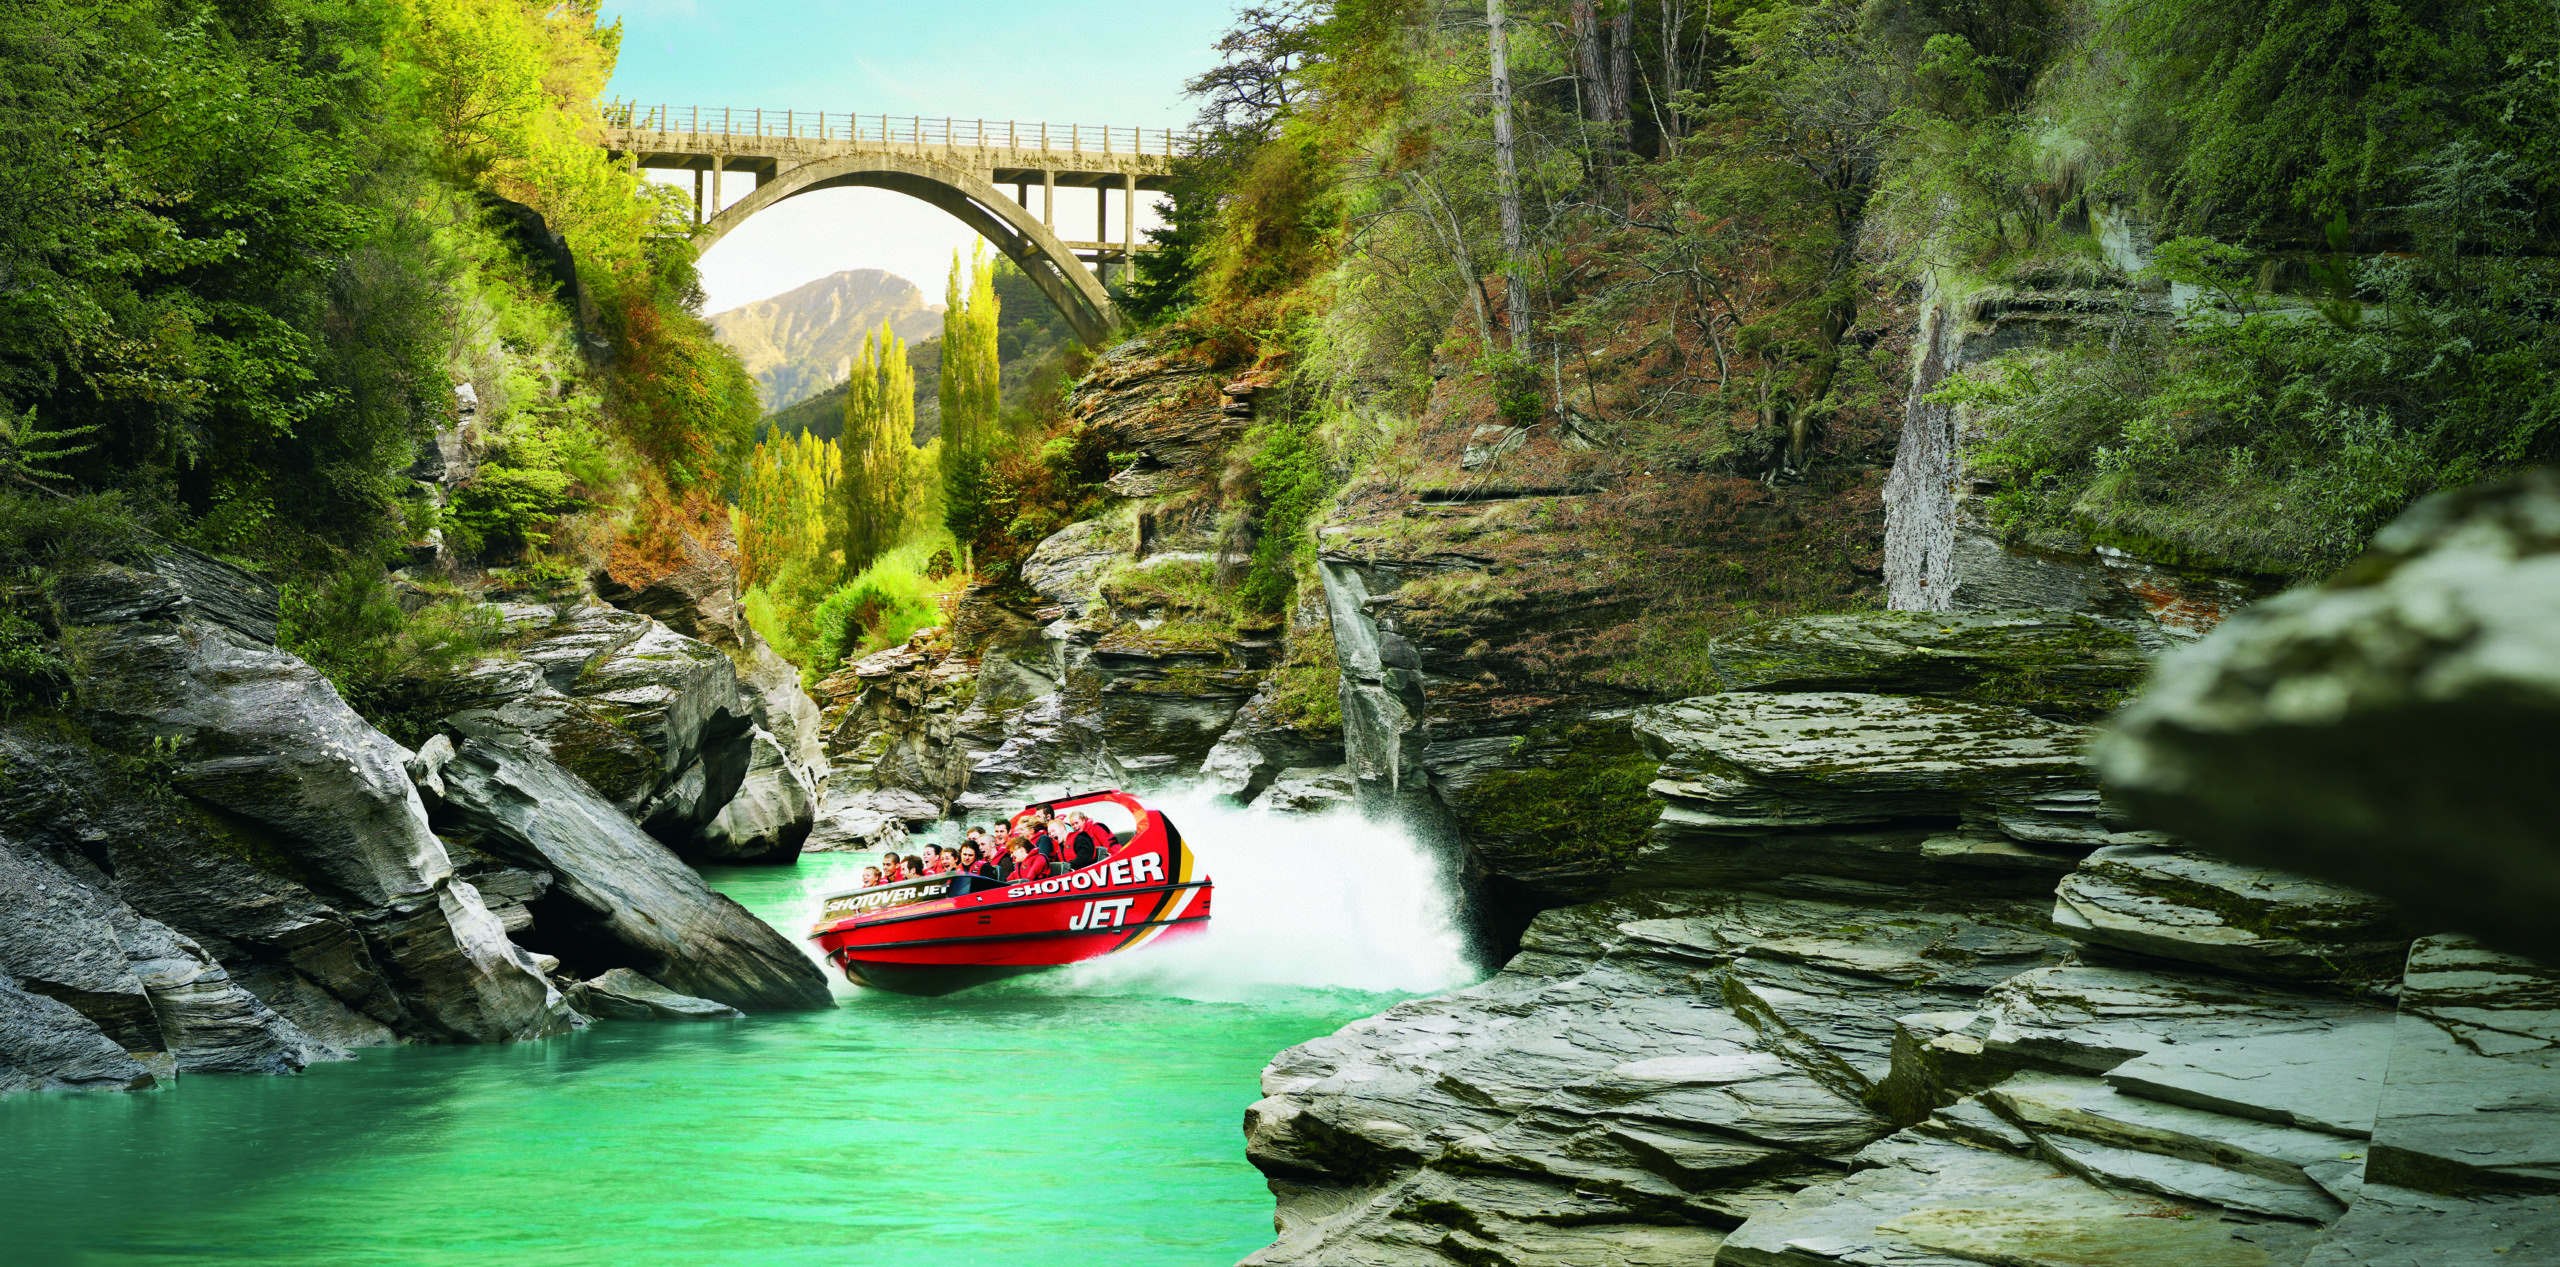 Shotover Jet boat speeds through a tight crevasse.